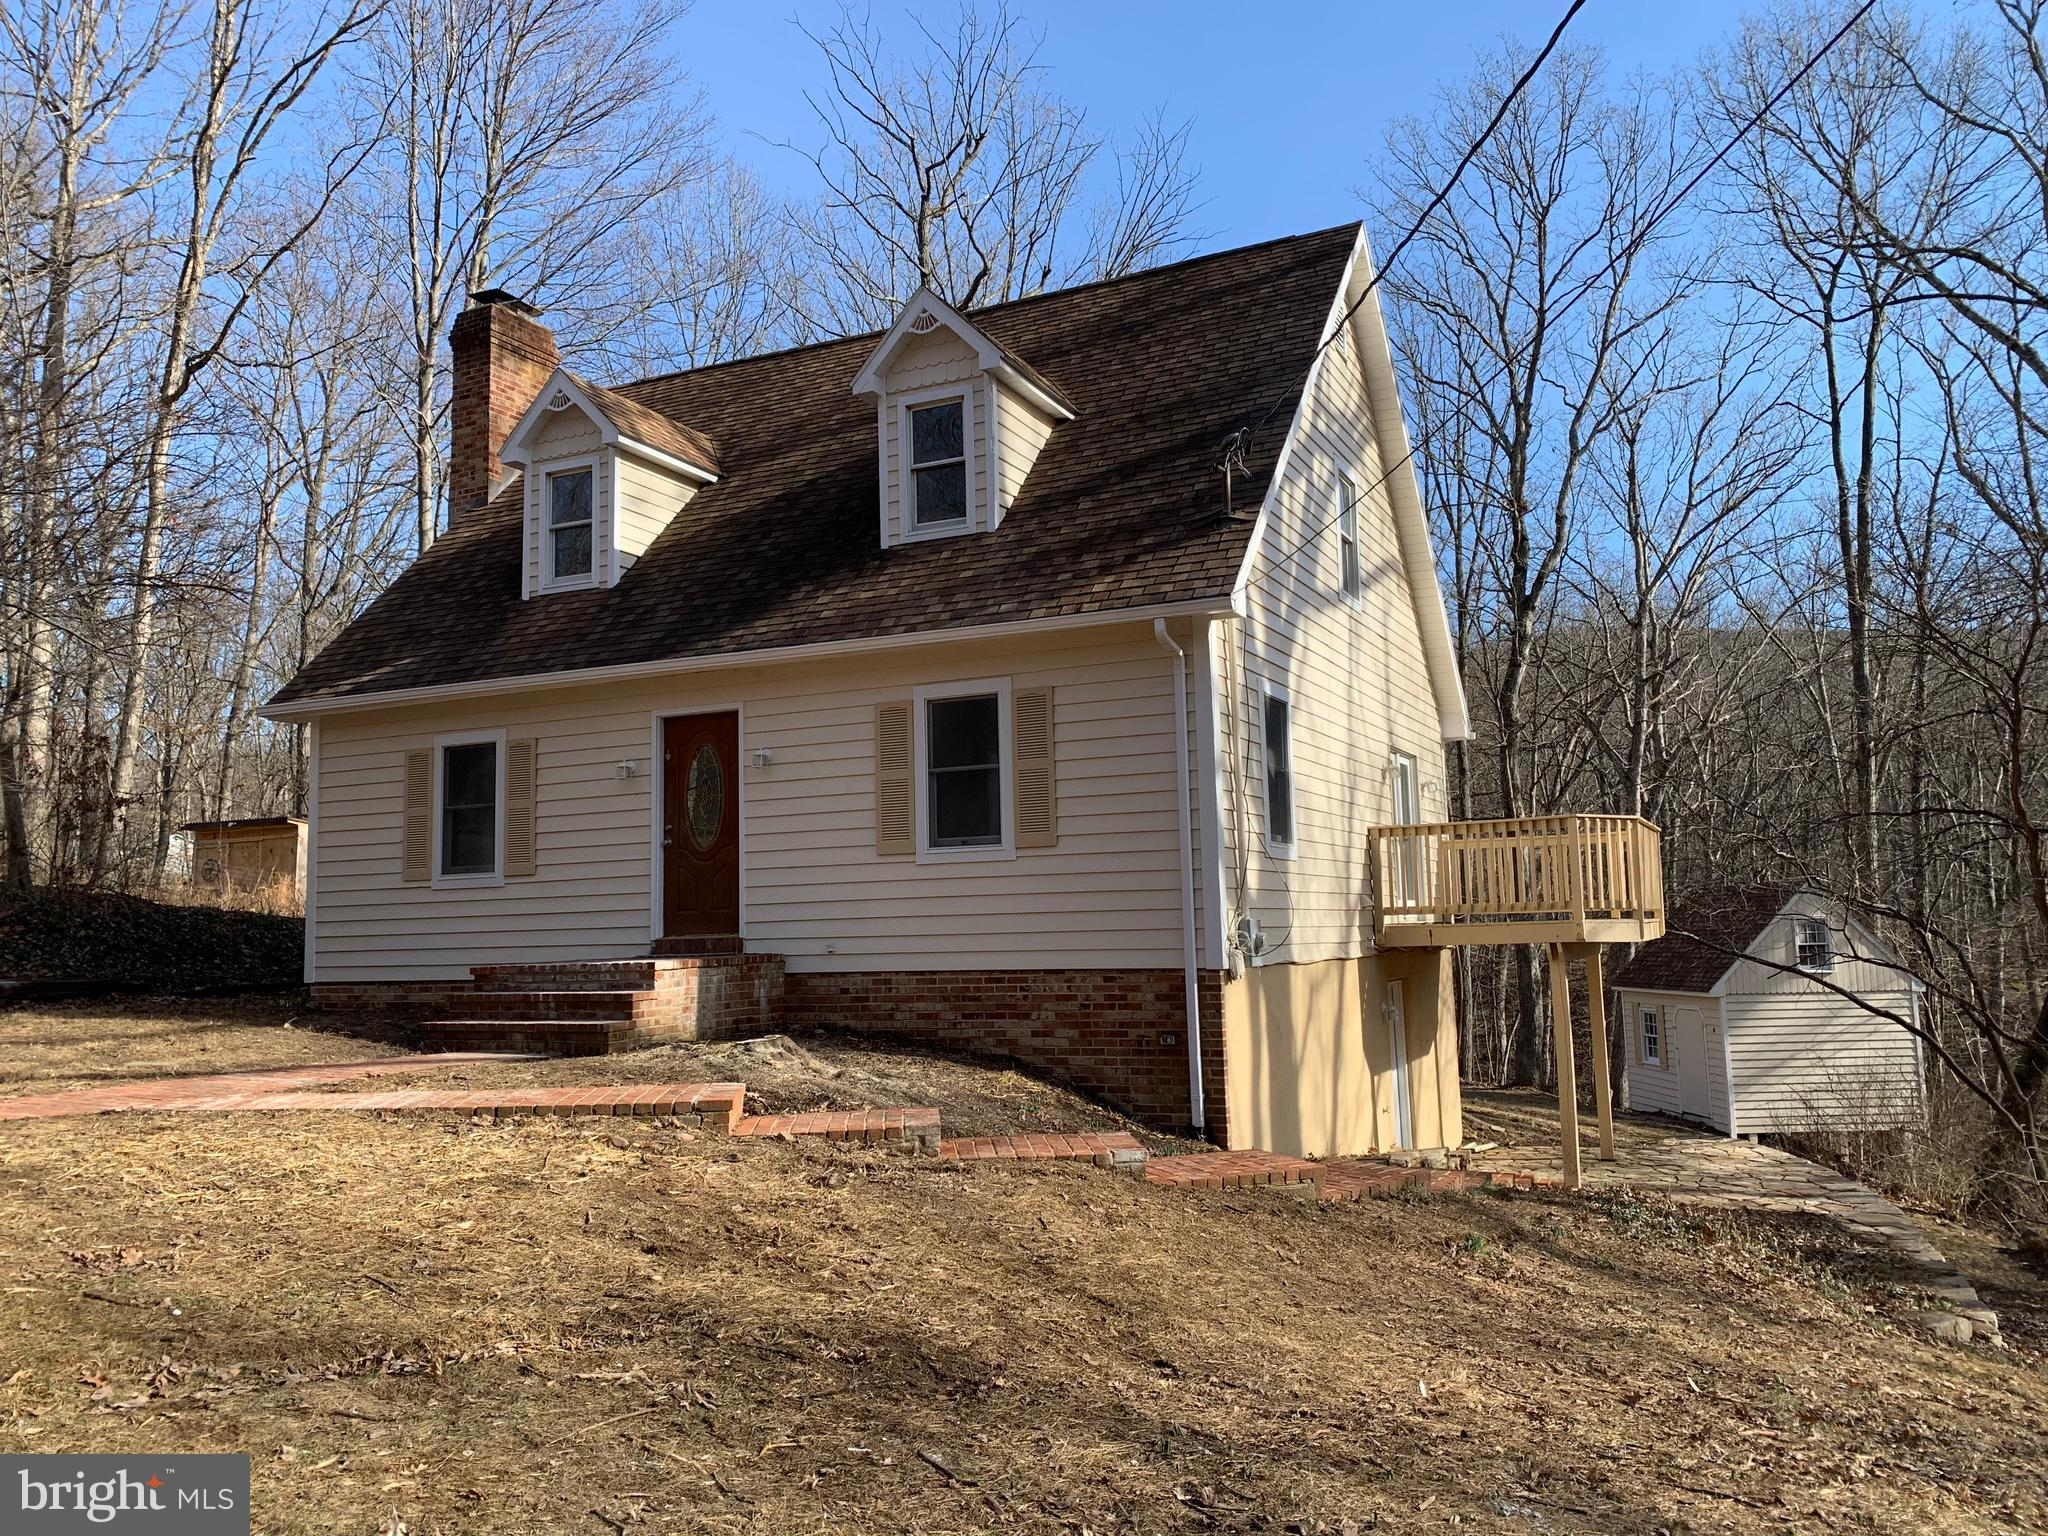 Cape code style home sits on approx. 0.98+/- ac lot in Shannondale. Home features 3BR, 3FB layout with a bedroom on the main level, fireplace in family room, eat-in kitchen with a small patio deck just off kitchen area, separate dining room and unfinished basement. Seller offering a Home Warranty.